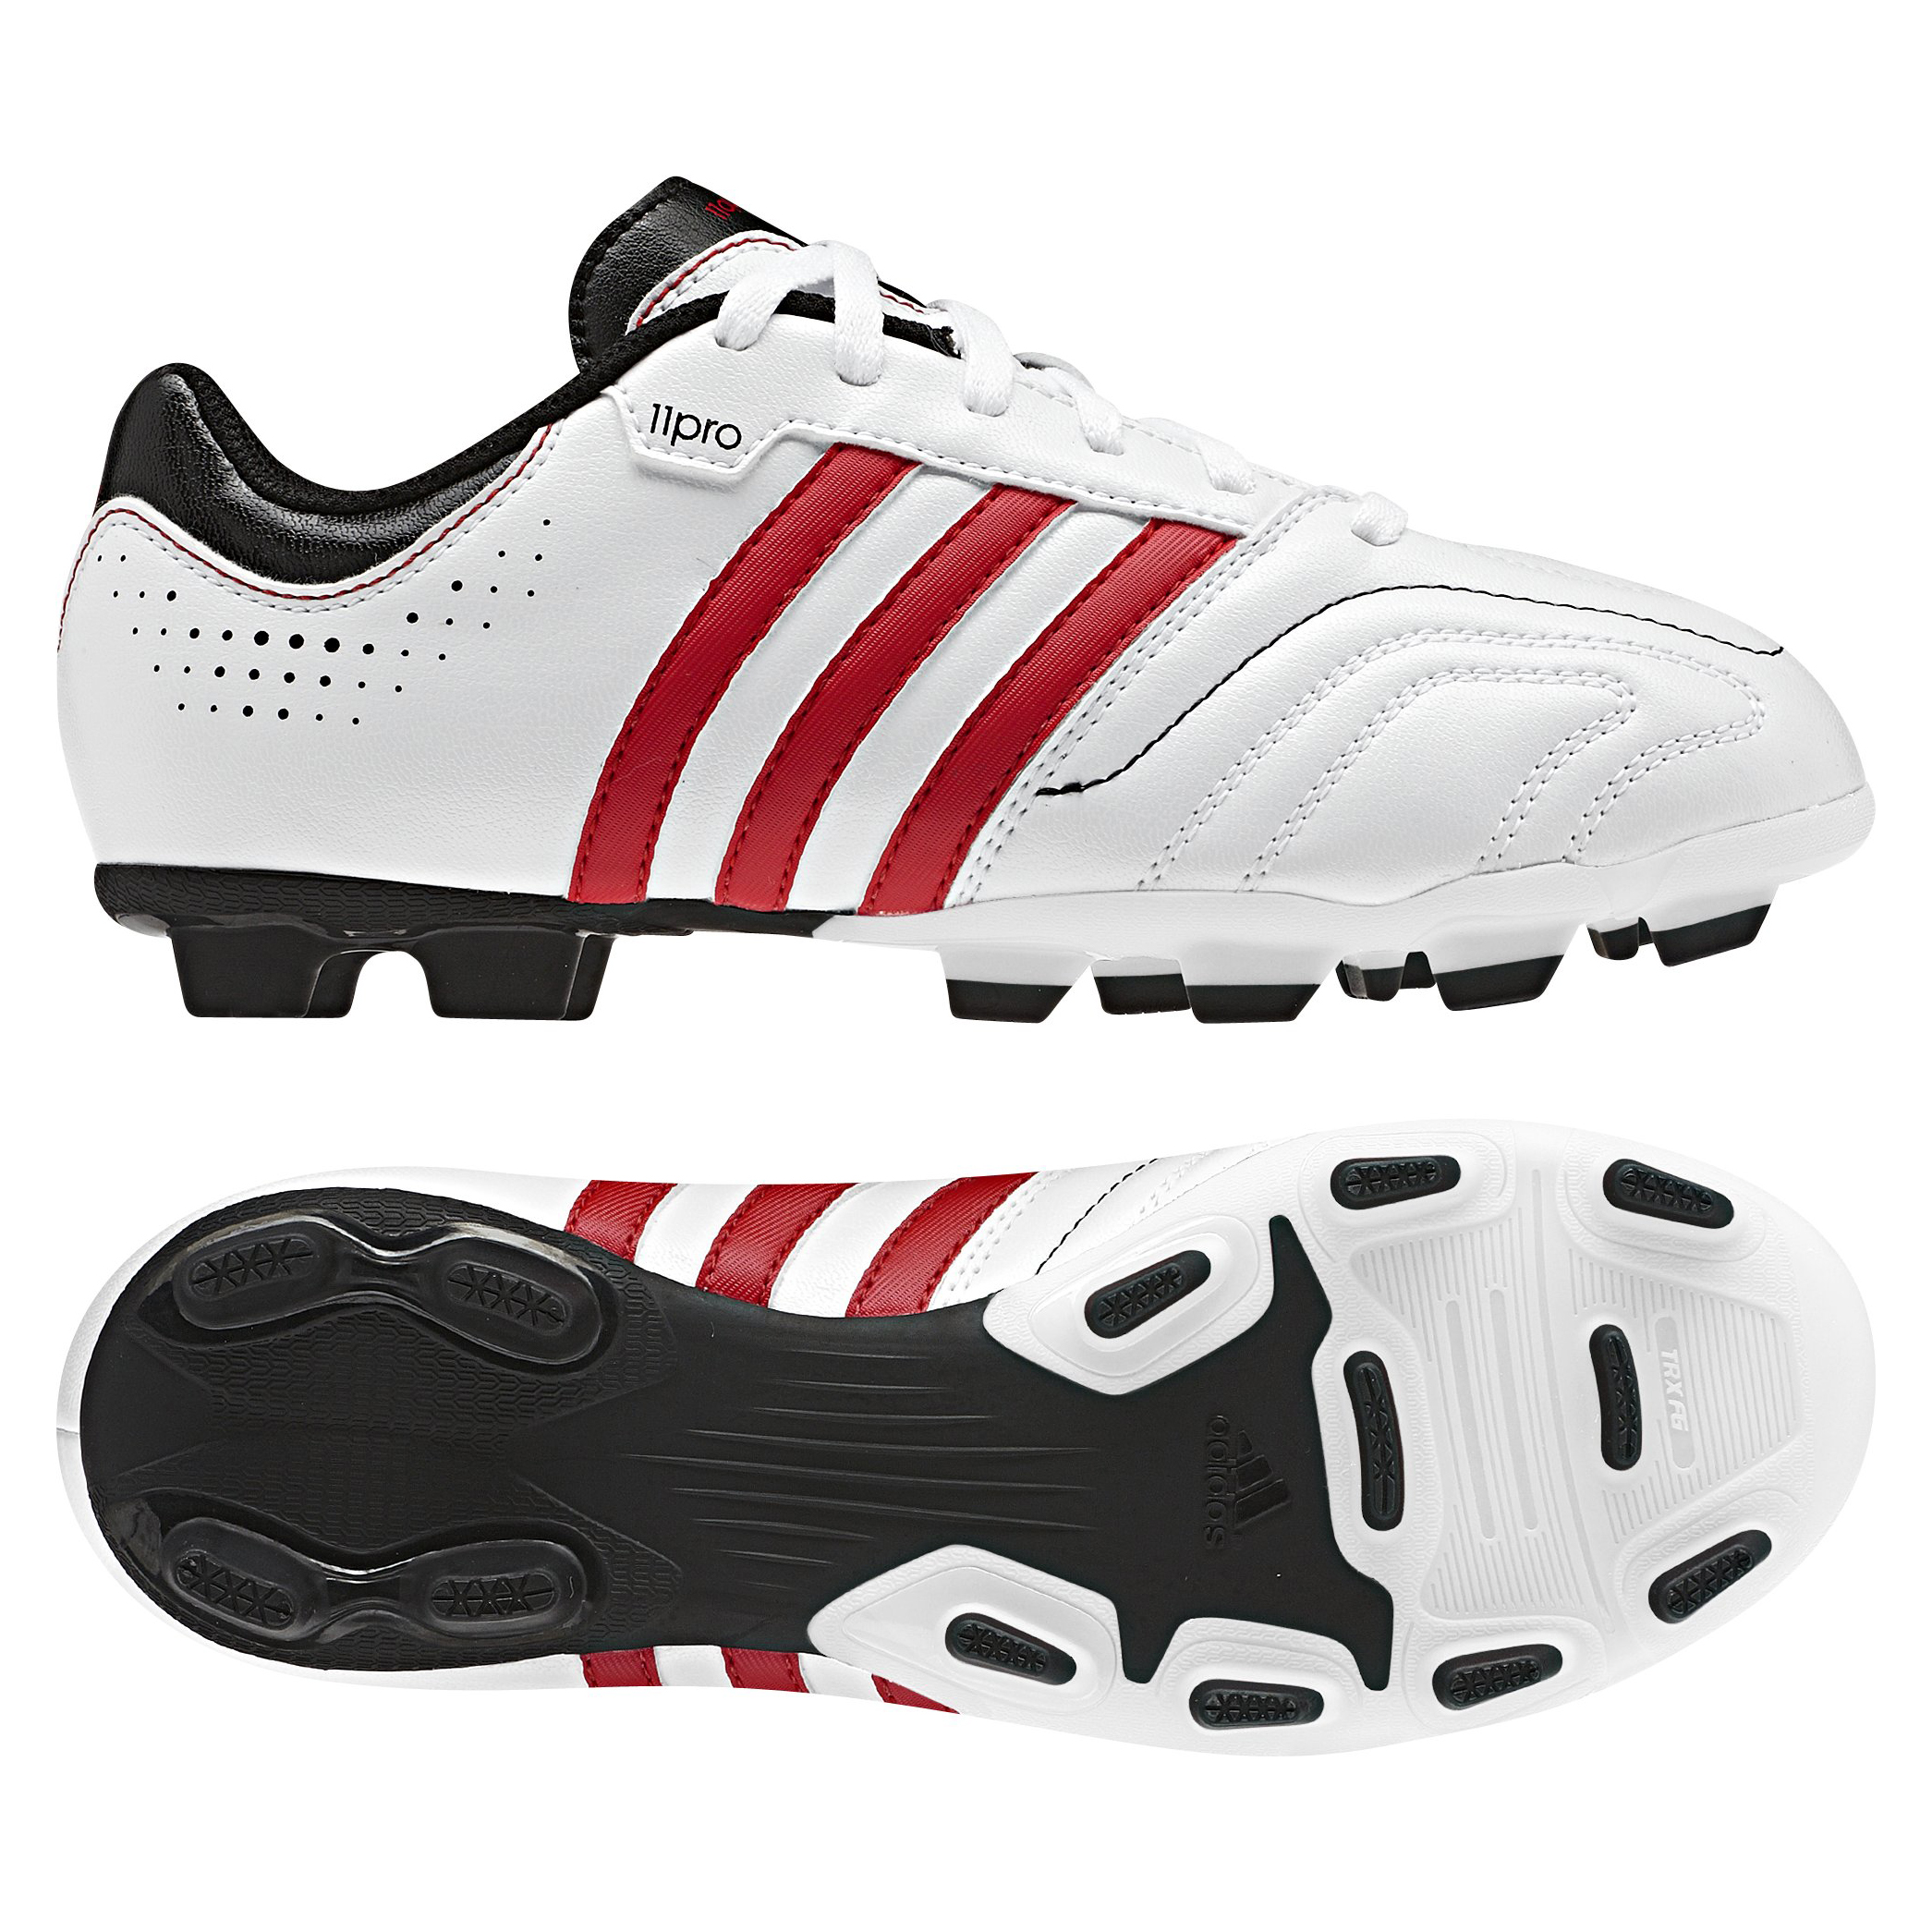 adidas 11Questra TRX Firm Ground Football Boots - Running White/Vivid Red/Black - Kids